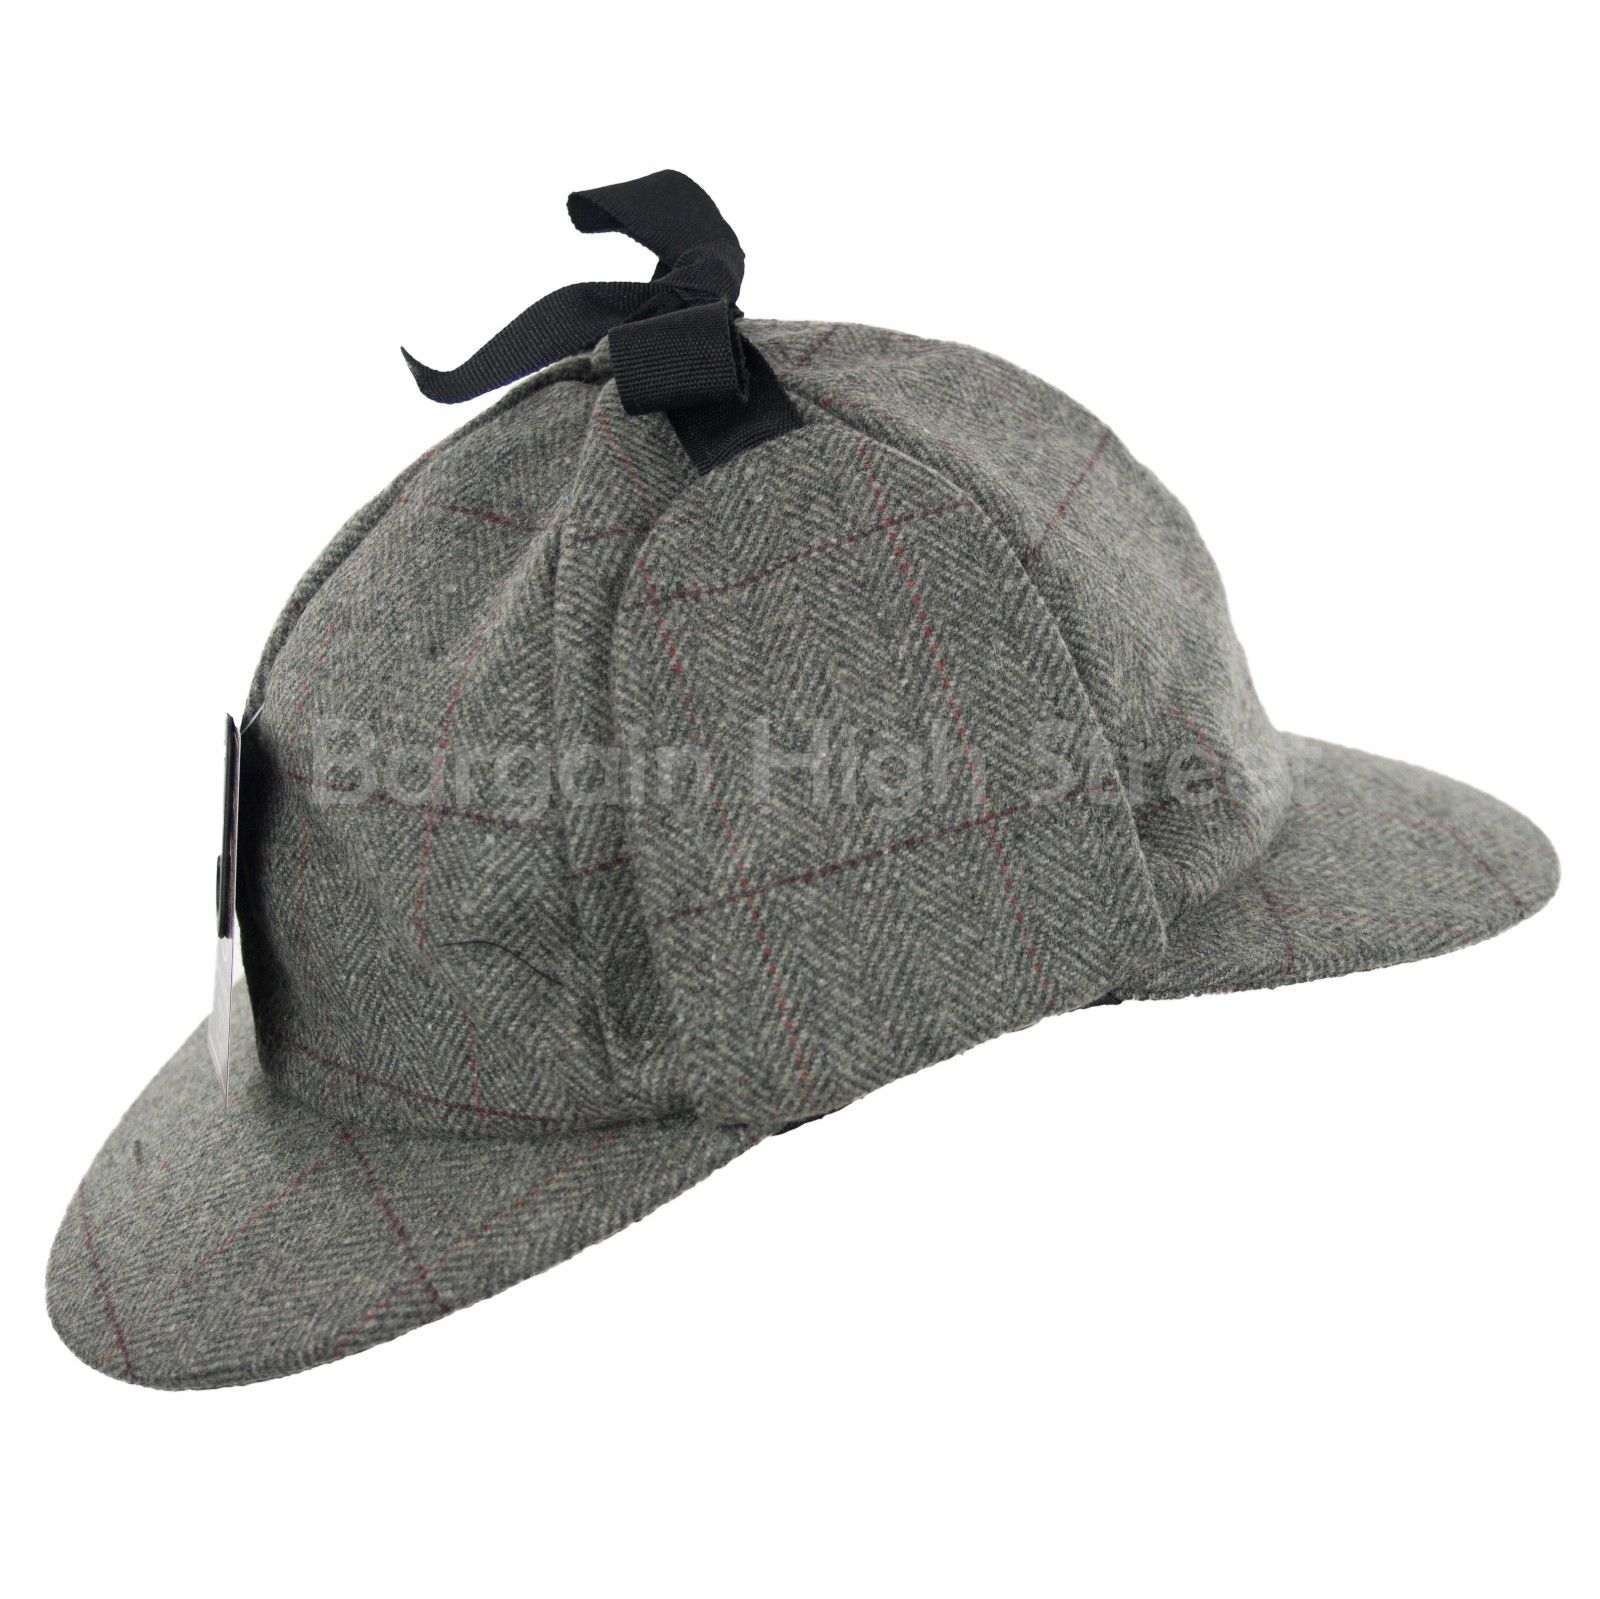 Grey Country Wool Tweed Deerstalker Hat Sherlock Holmes Hunting